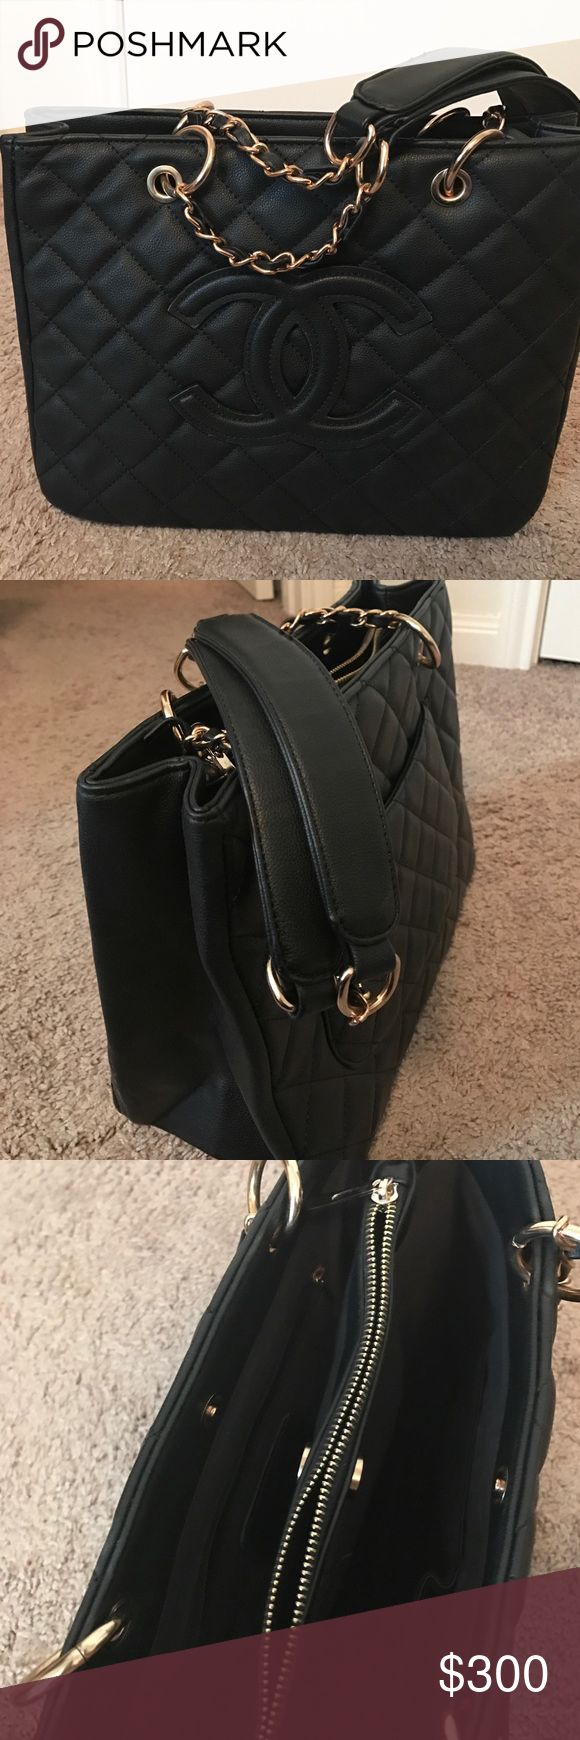 Chanel purse Black purse/handbag with gold color hardware. Very sturdy with Chanel like logo. Price negotiable through Buy Now button. Not a u t e n t i c. Bags Shoulder Bags